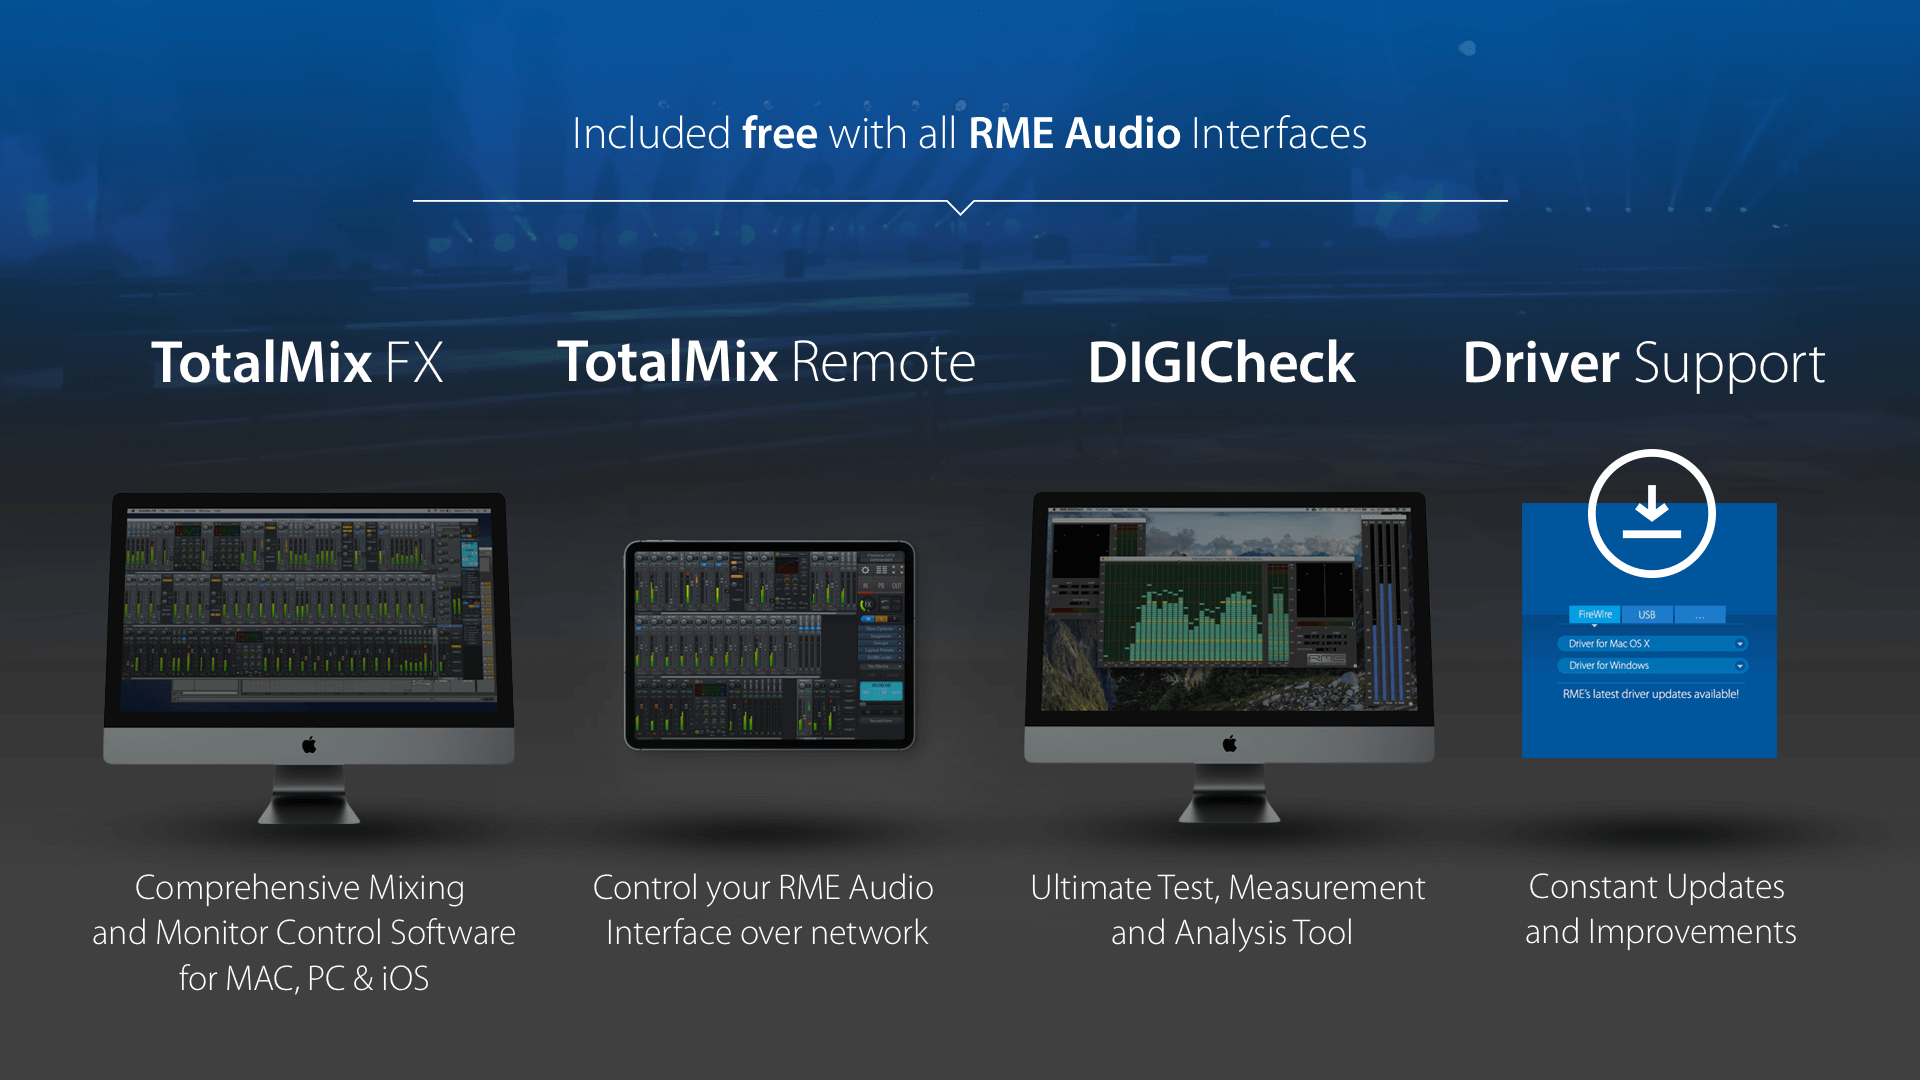 Free Software with any RME Audio Interface